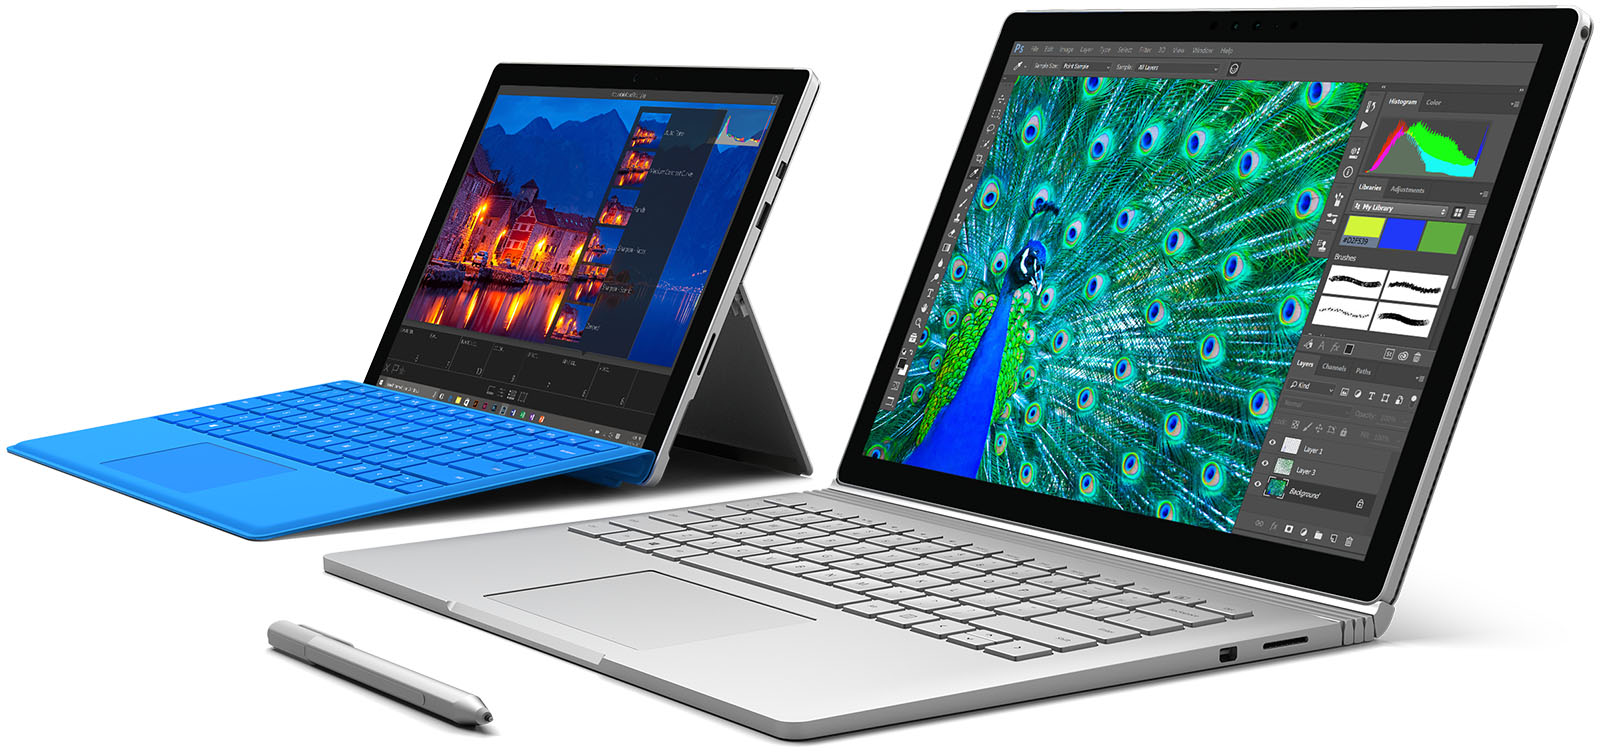 microsoft unveils much anticipated surface pro 4 surprises with brand new surface book notebook. Black Bedroom Furniture Sets. Home Design Ideas